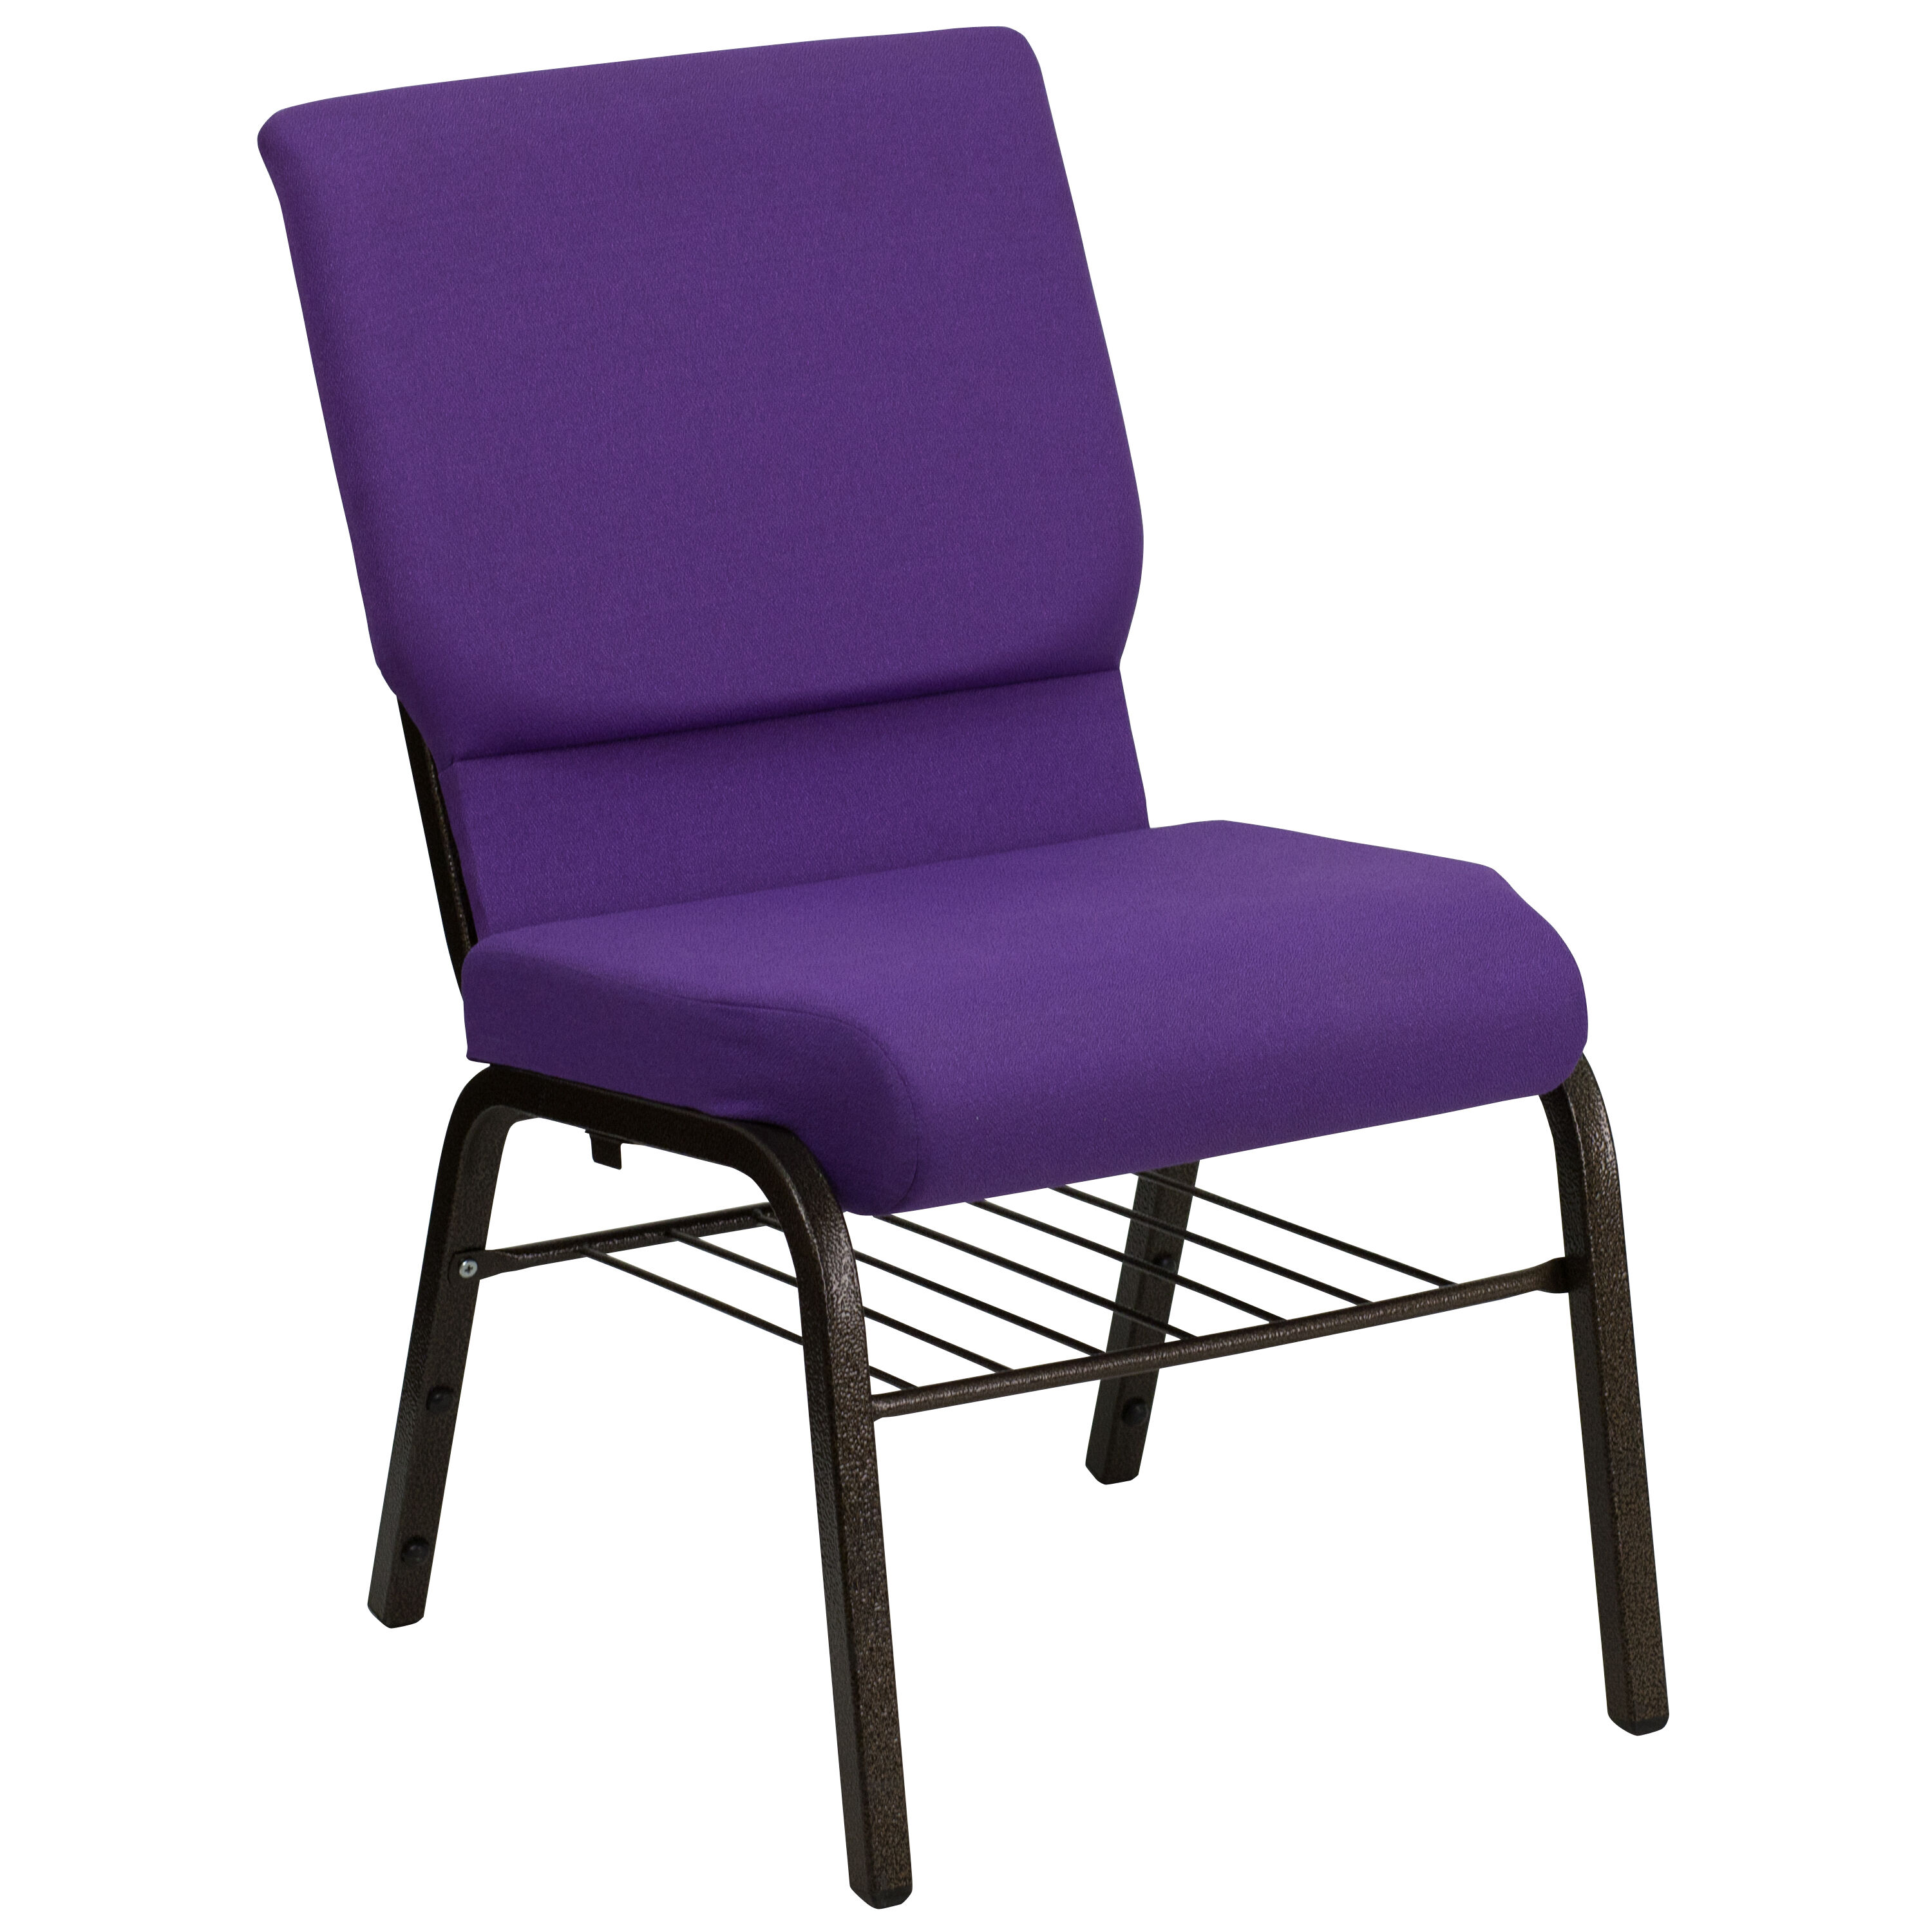 cathedral chairs high back leather executive chair boss office purple fabric church xu ch 60096 pu bas gg